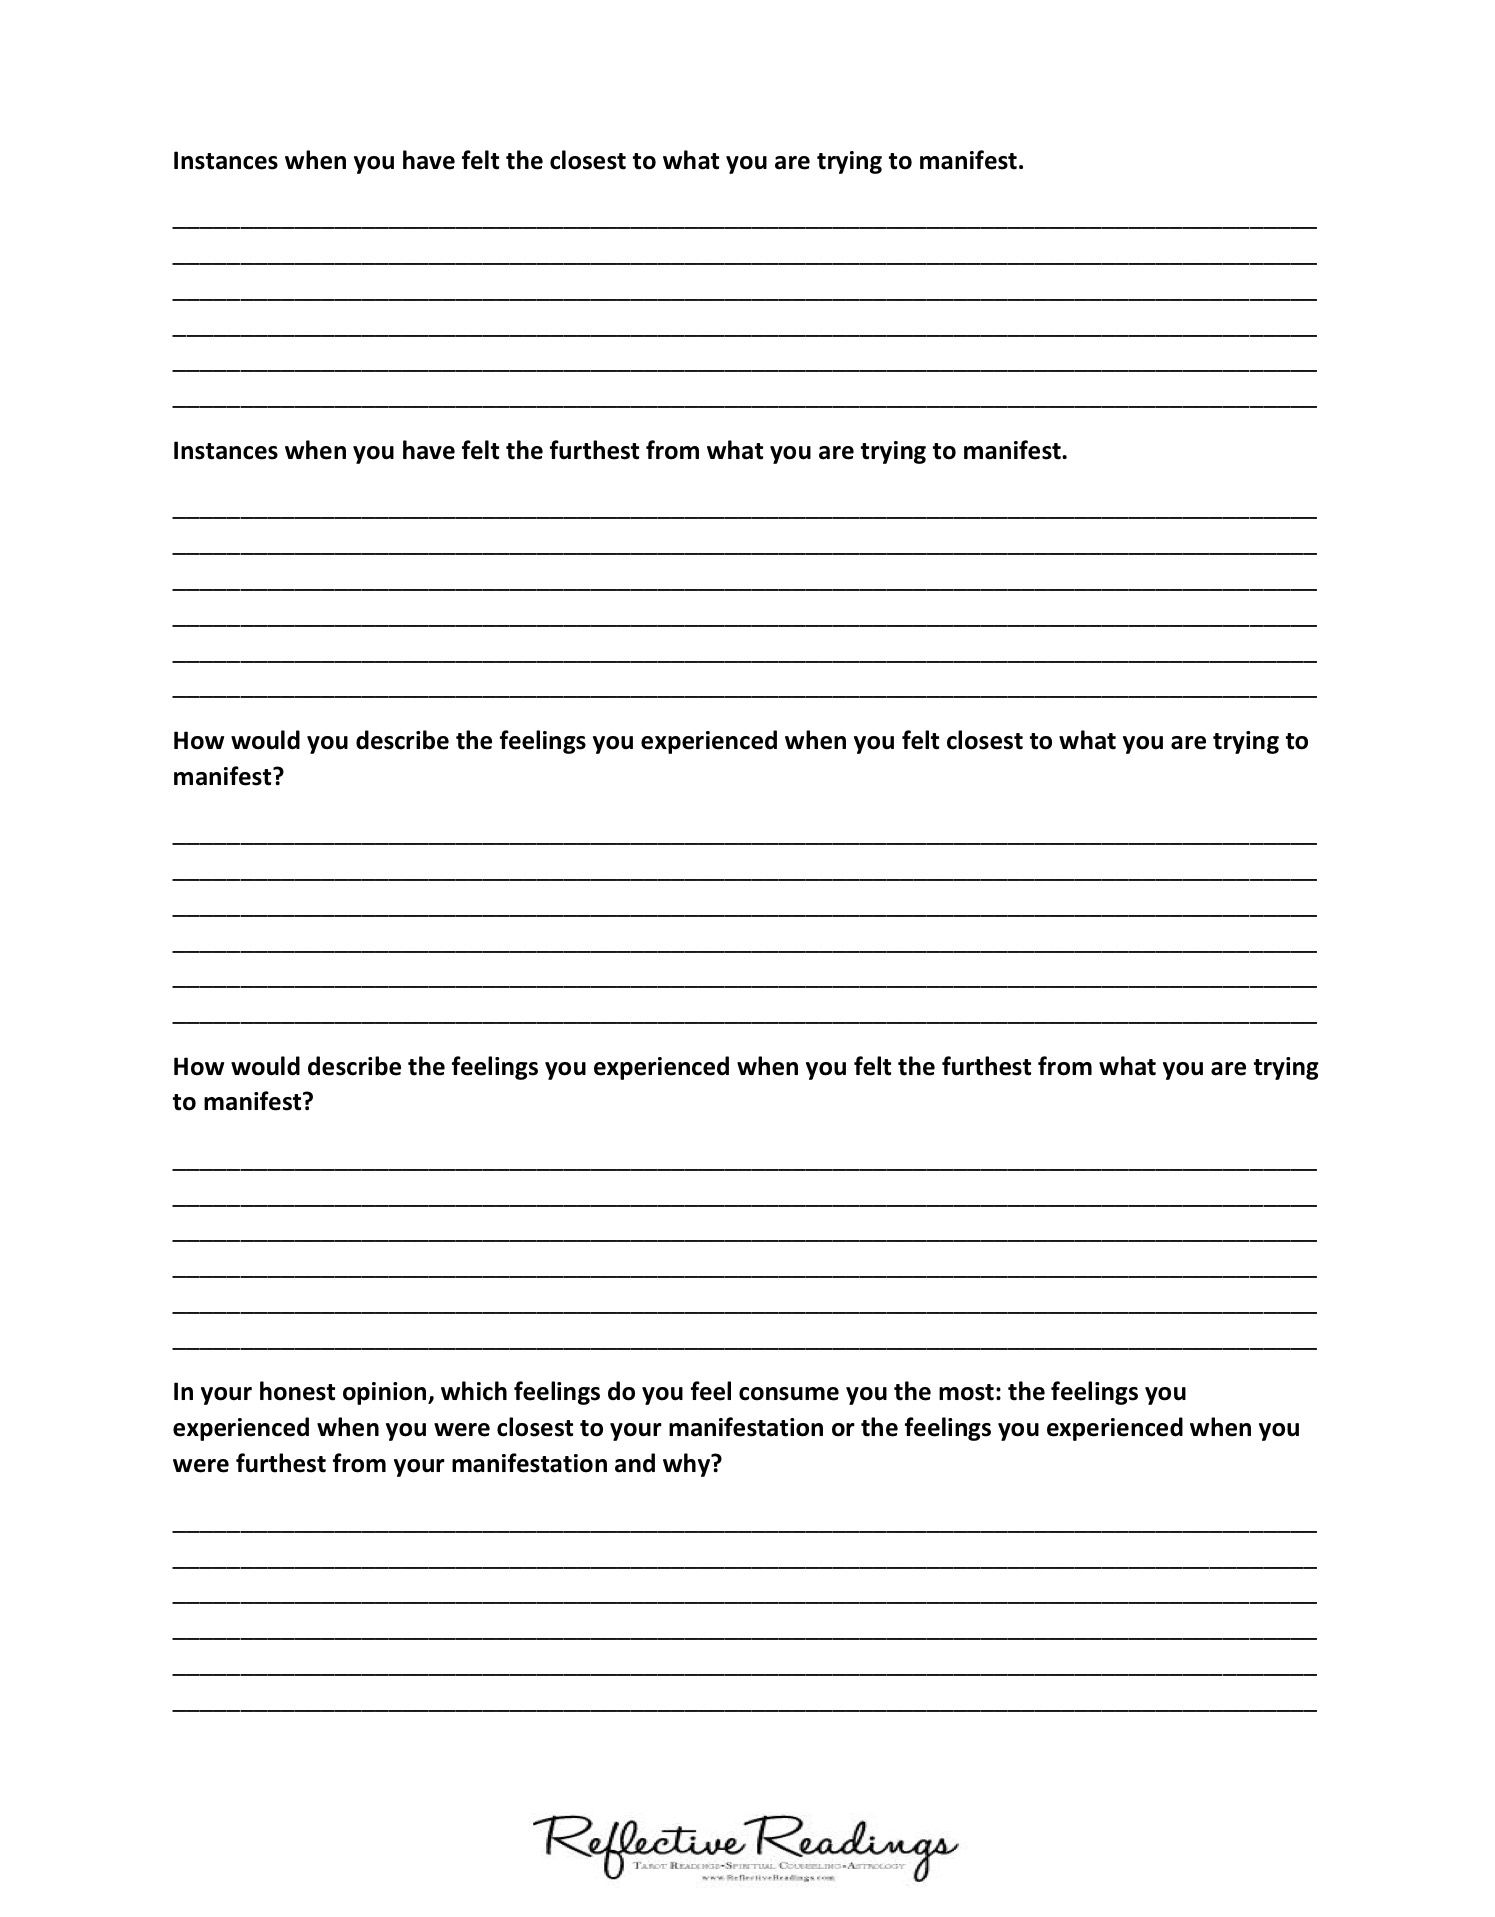 worksheet Think And Grow Rich Worksheet law of attractionmanifestation worksheet get closer to your desired reality find out